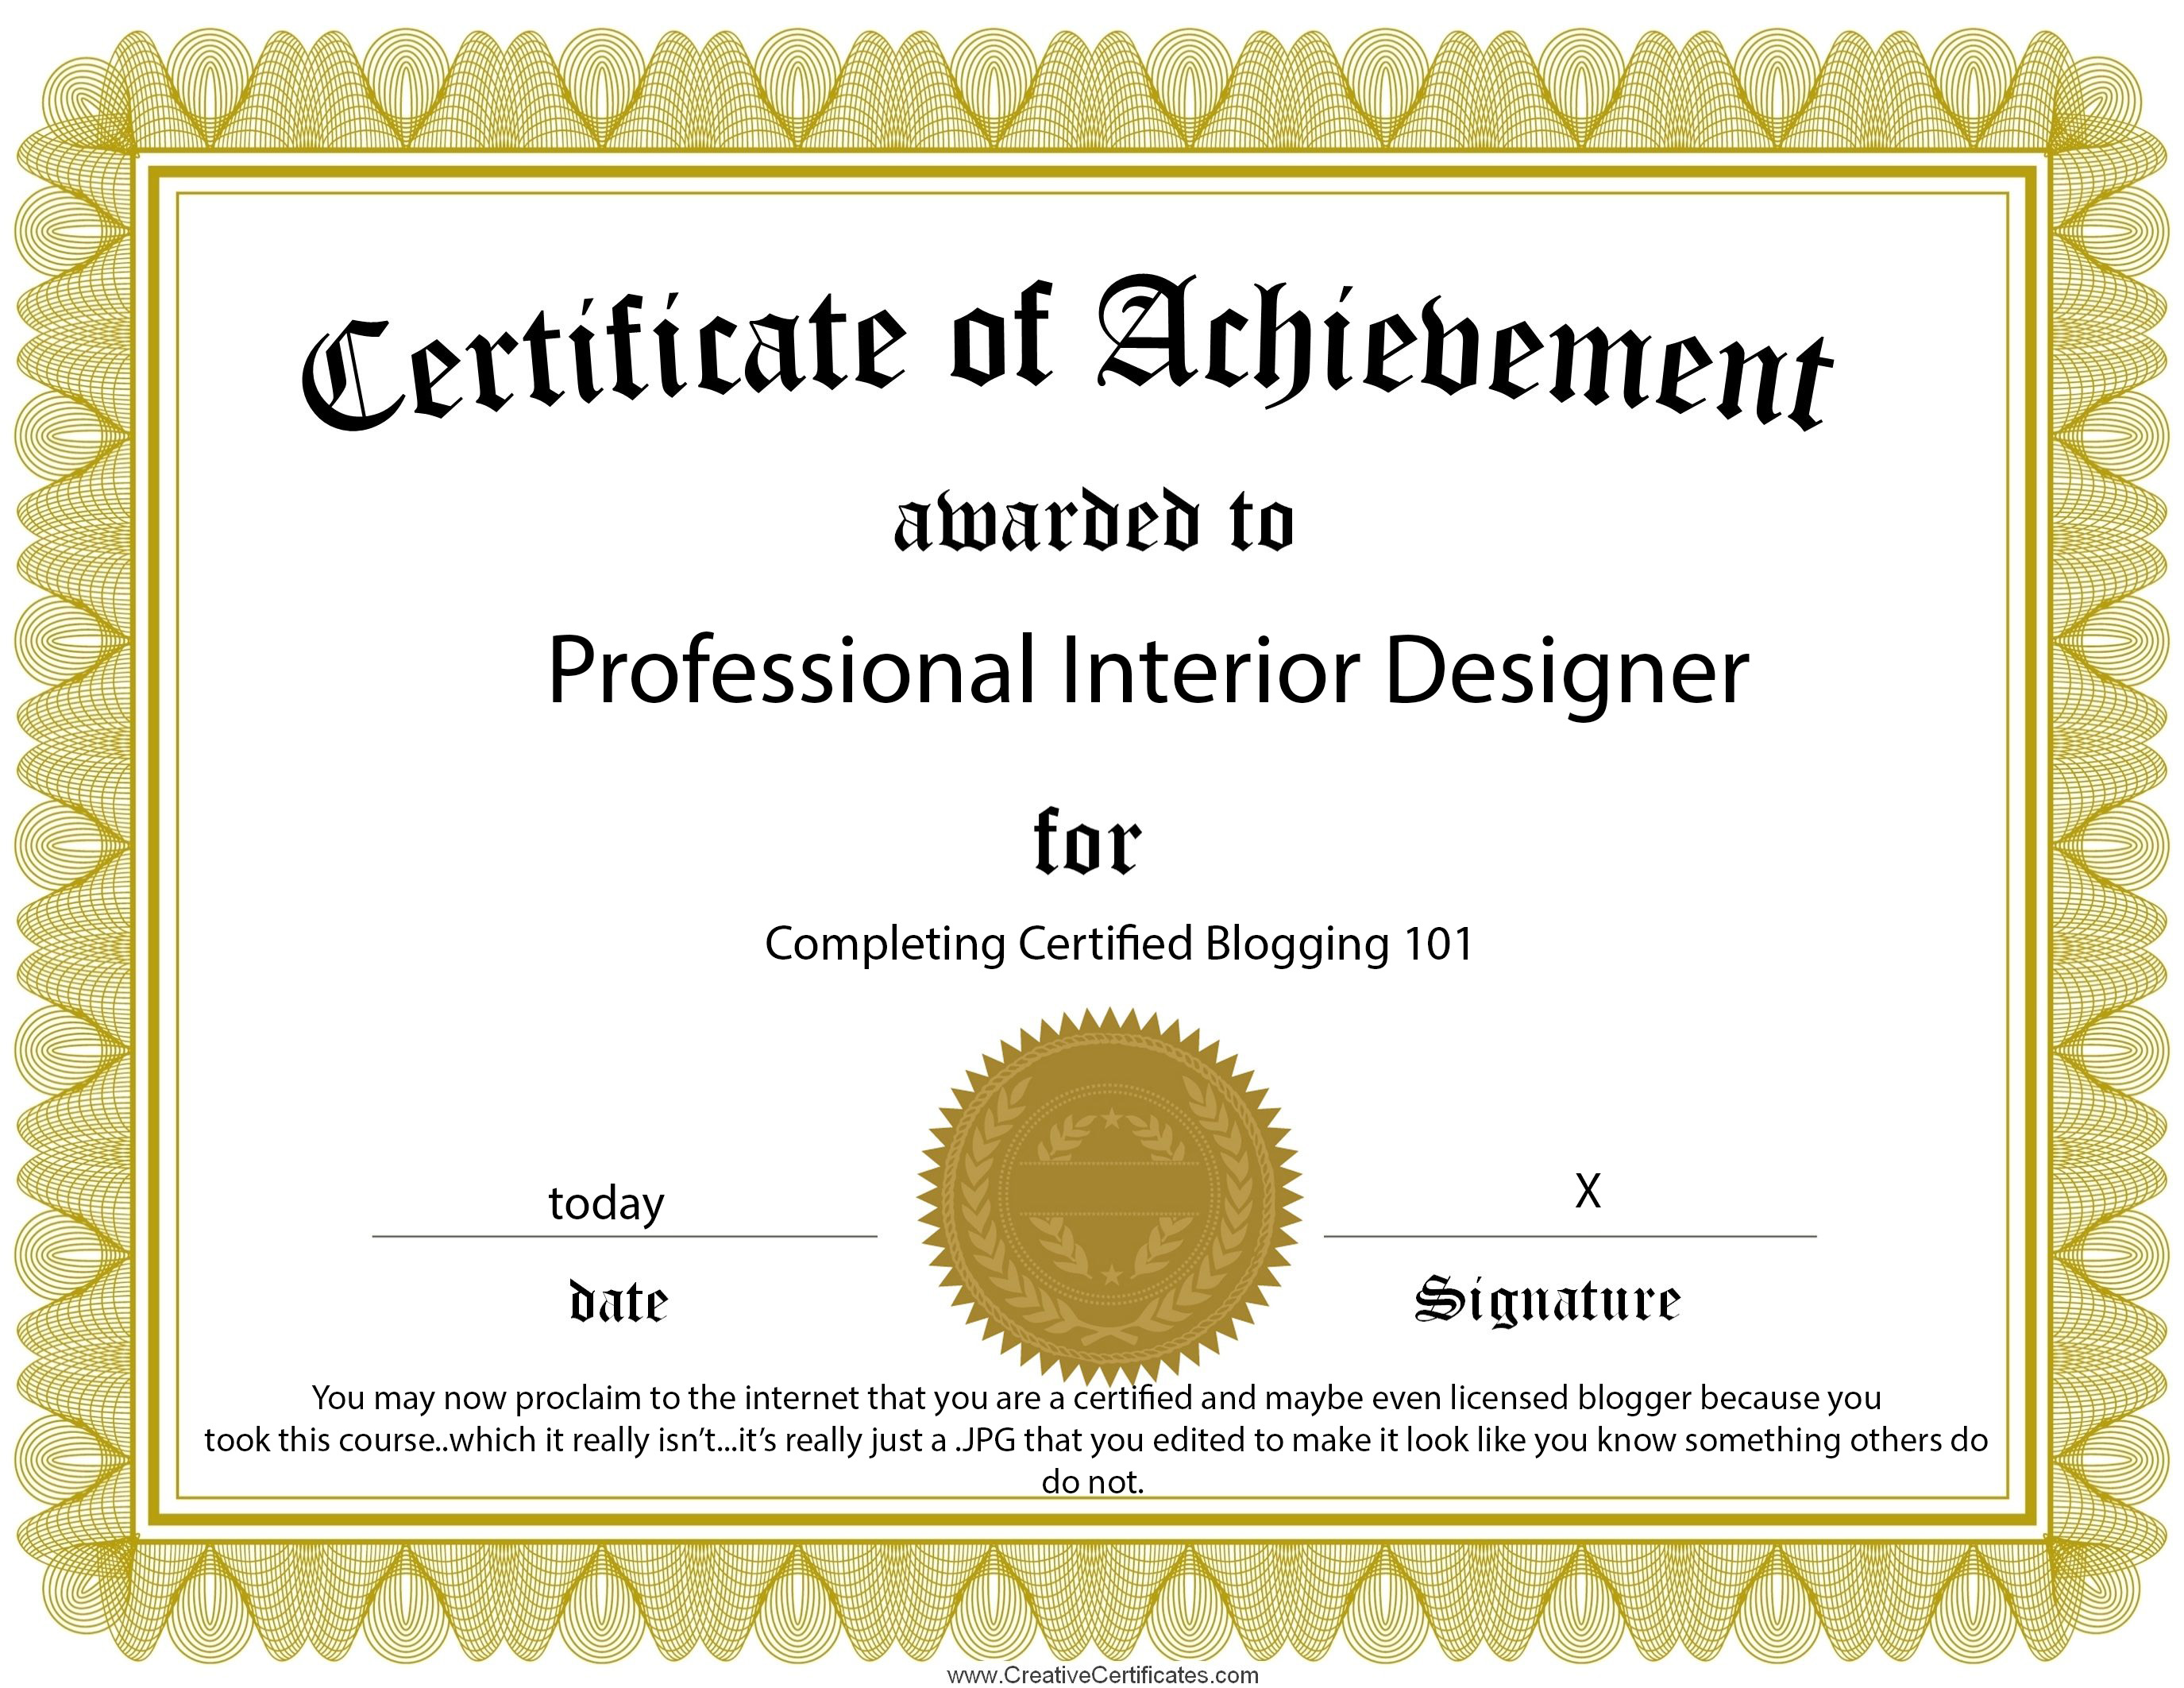 Good ... Certificate Of Achievement Template. INTERIOR DESIGN CERTIFICATION Amazing Pictures